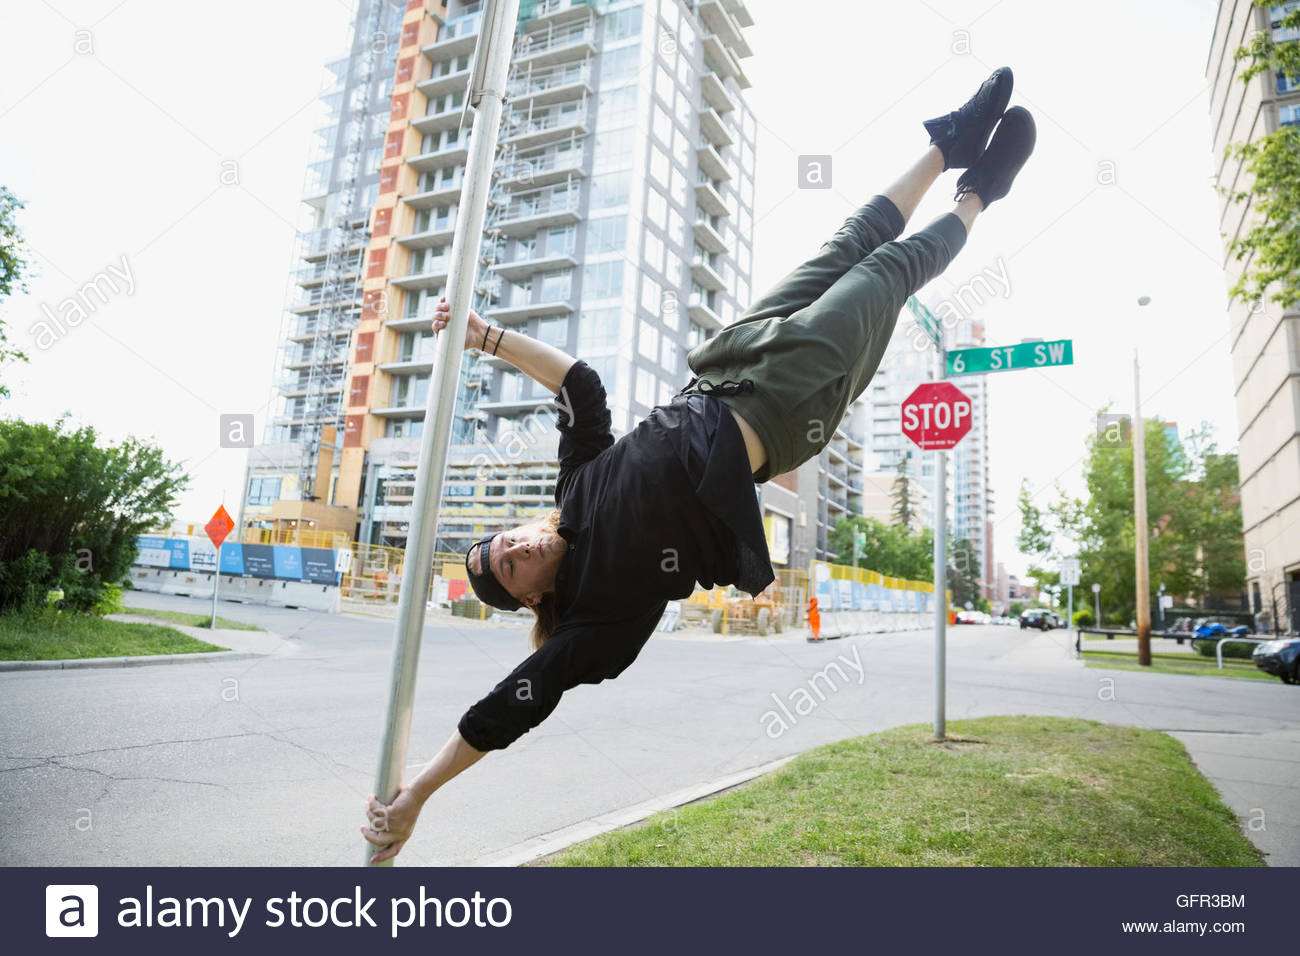 Young man doing parkour on pole in urban street - Stock Image